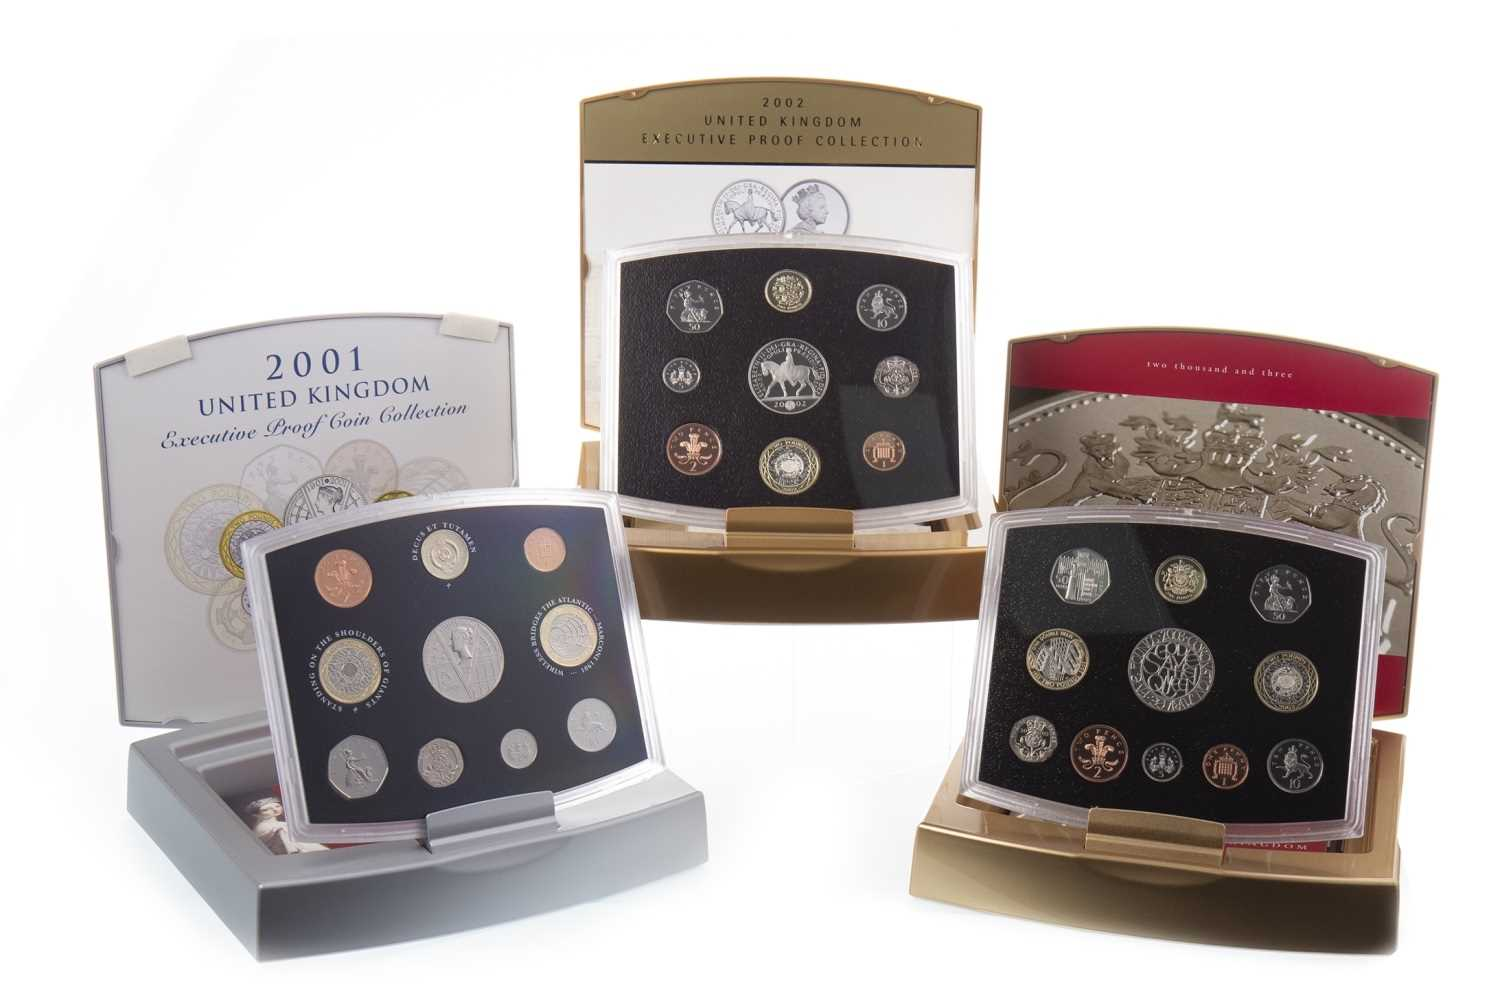 Lot 586 - THREE UNITED KINGDOM EXECUTIVE COIN COLLECTIONS